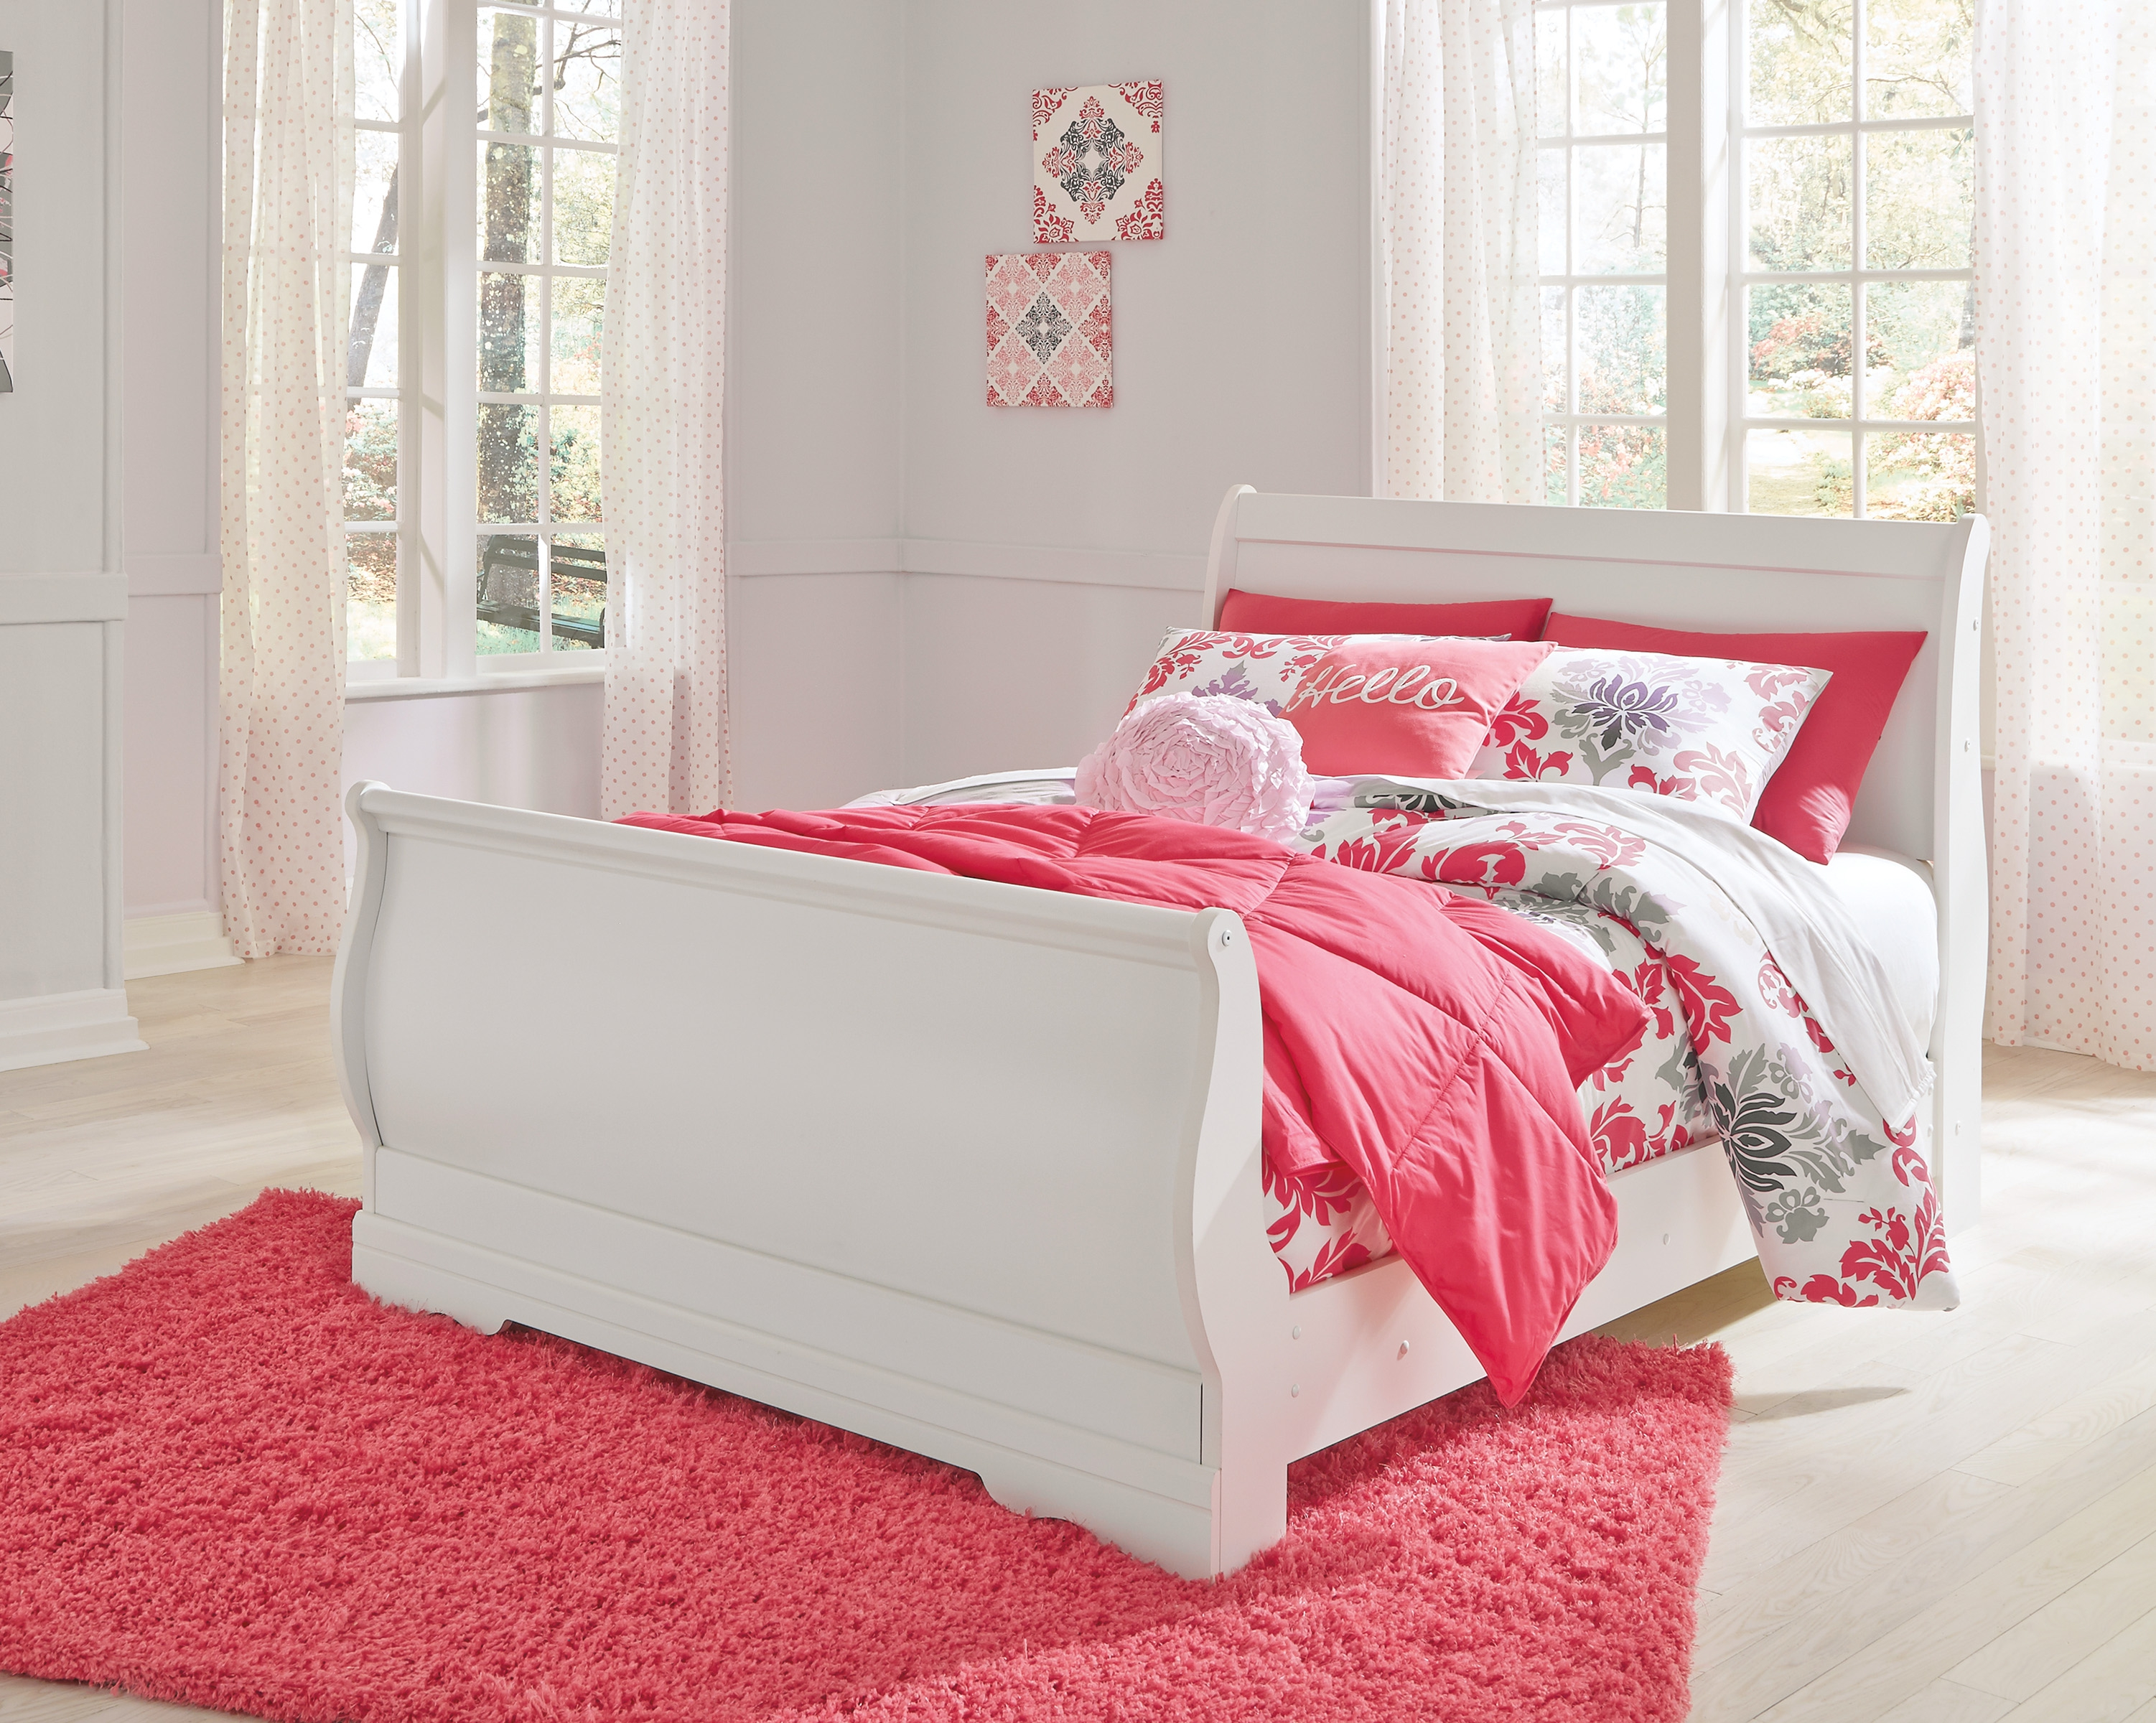 Ashley Furniture Anarasia Full Sleigh Bed The Classy Home